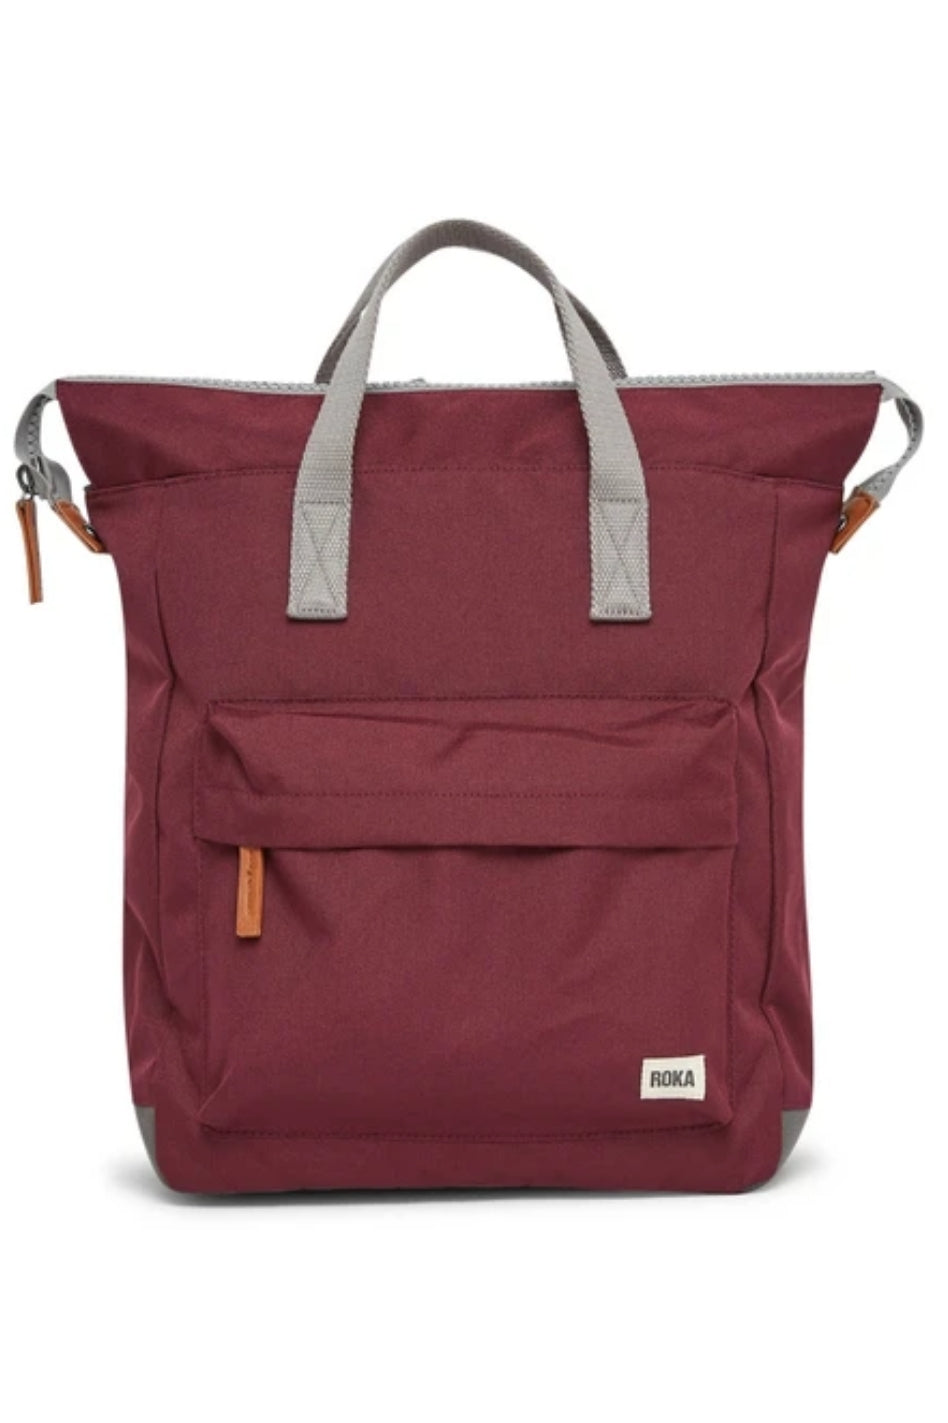 ROKA - Bantry B Medium Sustainable Bag